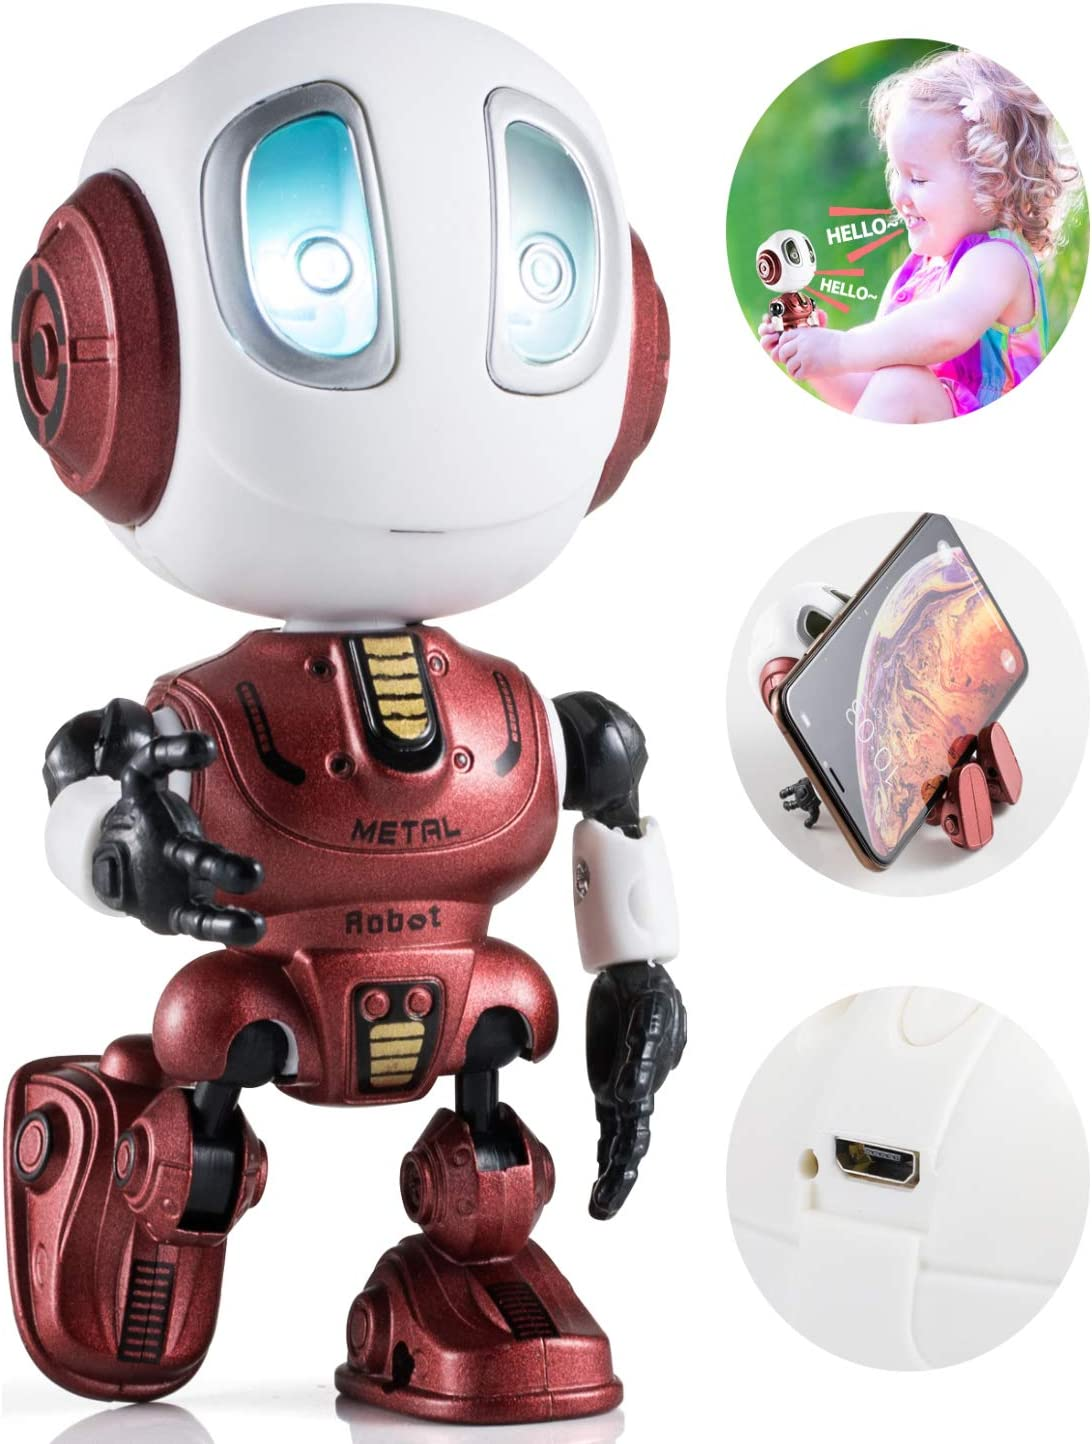 Mini Robot Talking Toys for Boys and Girls- Travel Toys Help Kids Talking for Christmas Stocking Stuffers BROADREAM Robot Toys for Kids LED Lights and Interactive Voice Changer Red